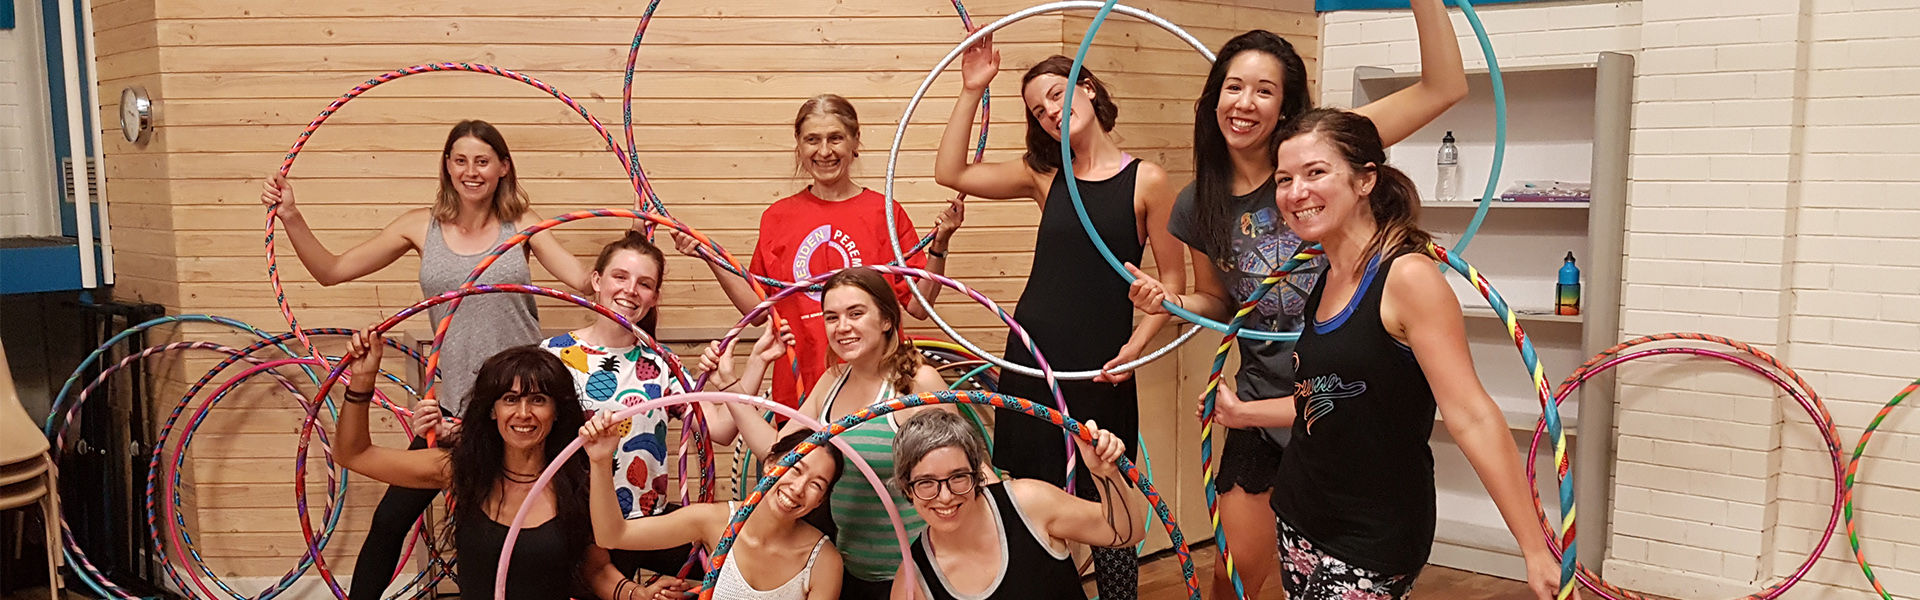 Hula Hoop Classes in Melbourne: What To Expect